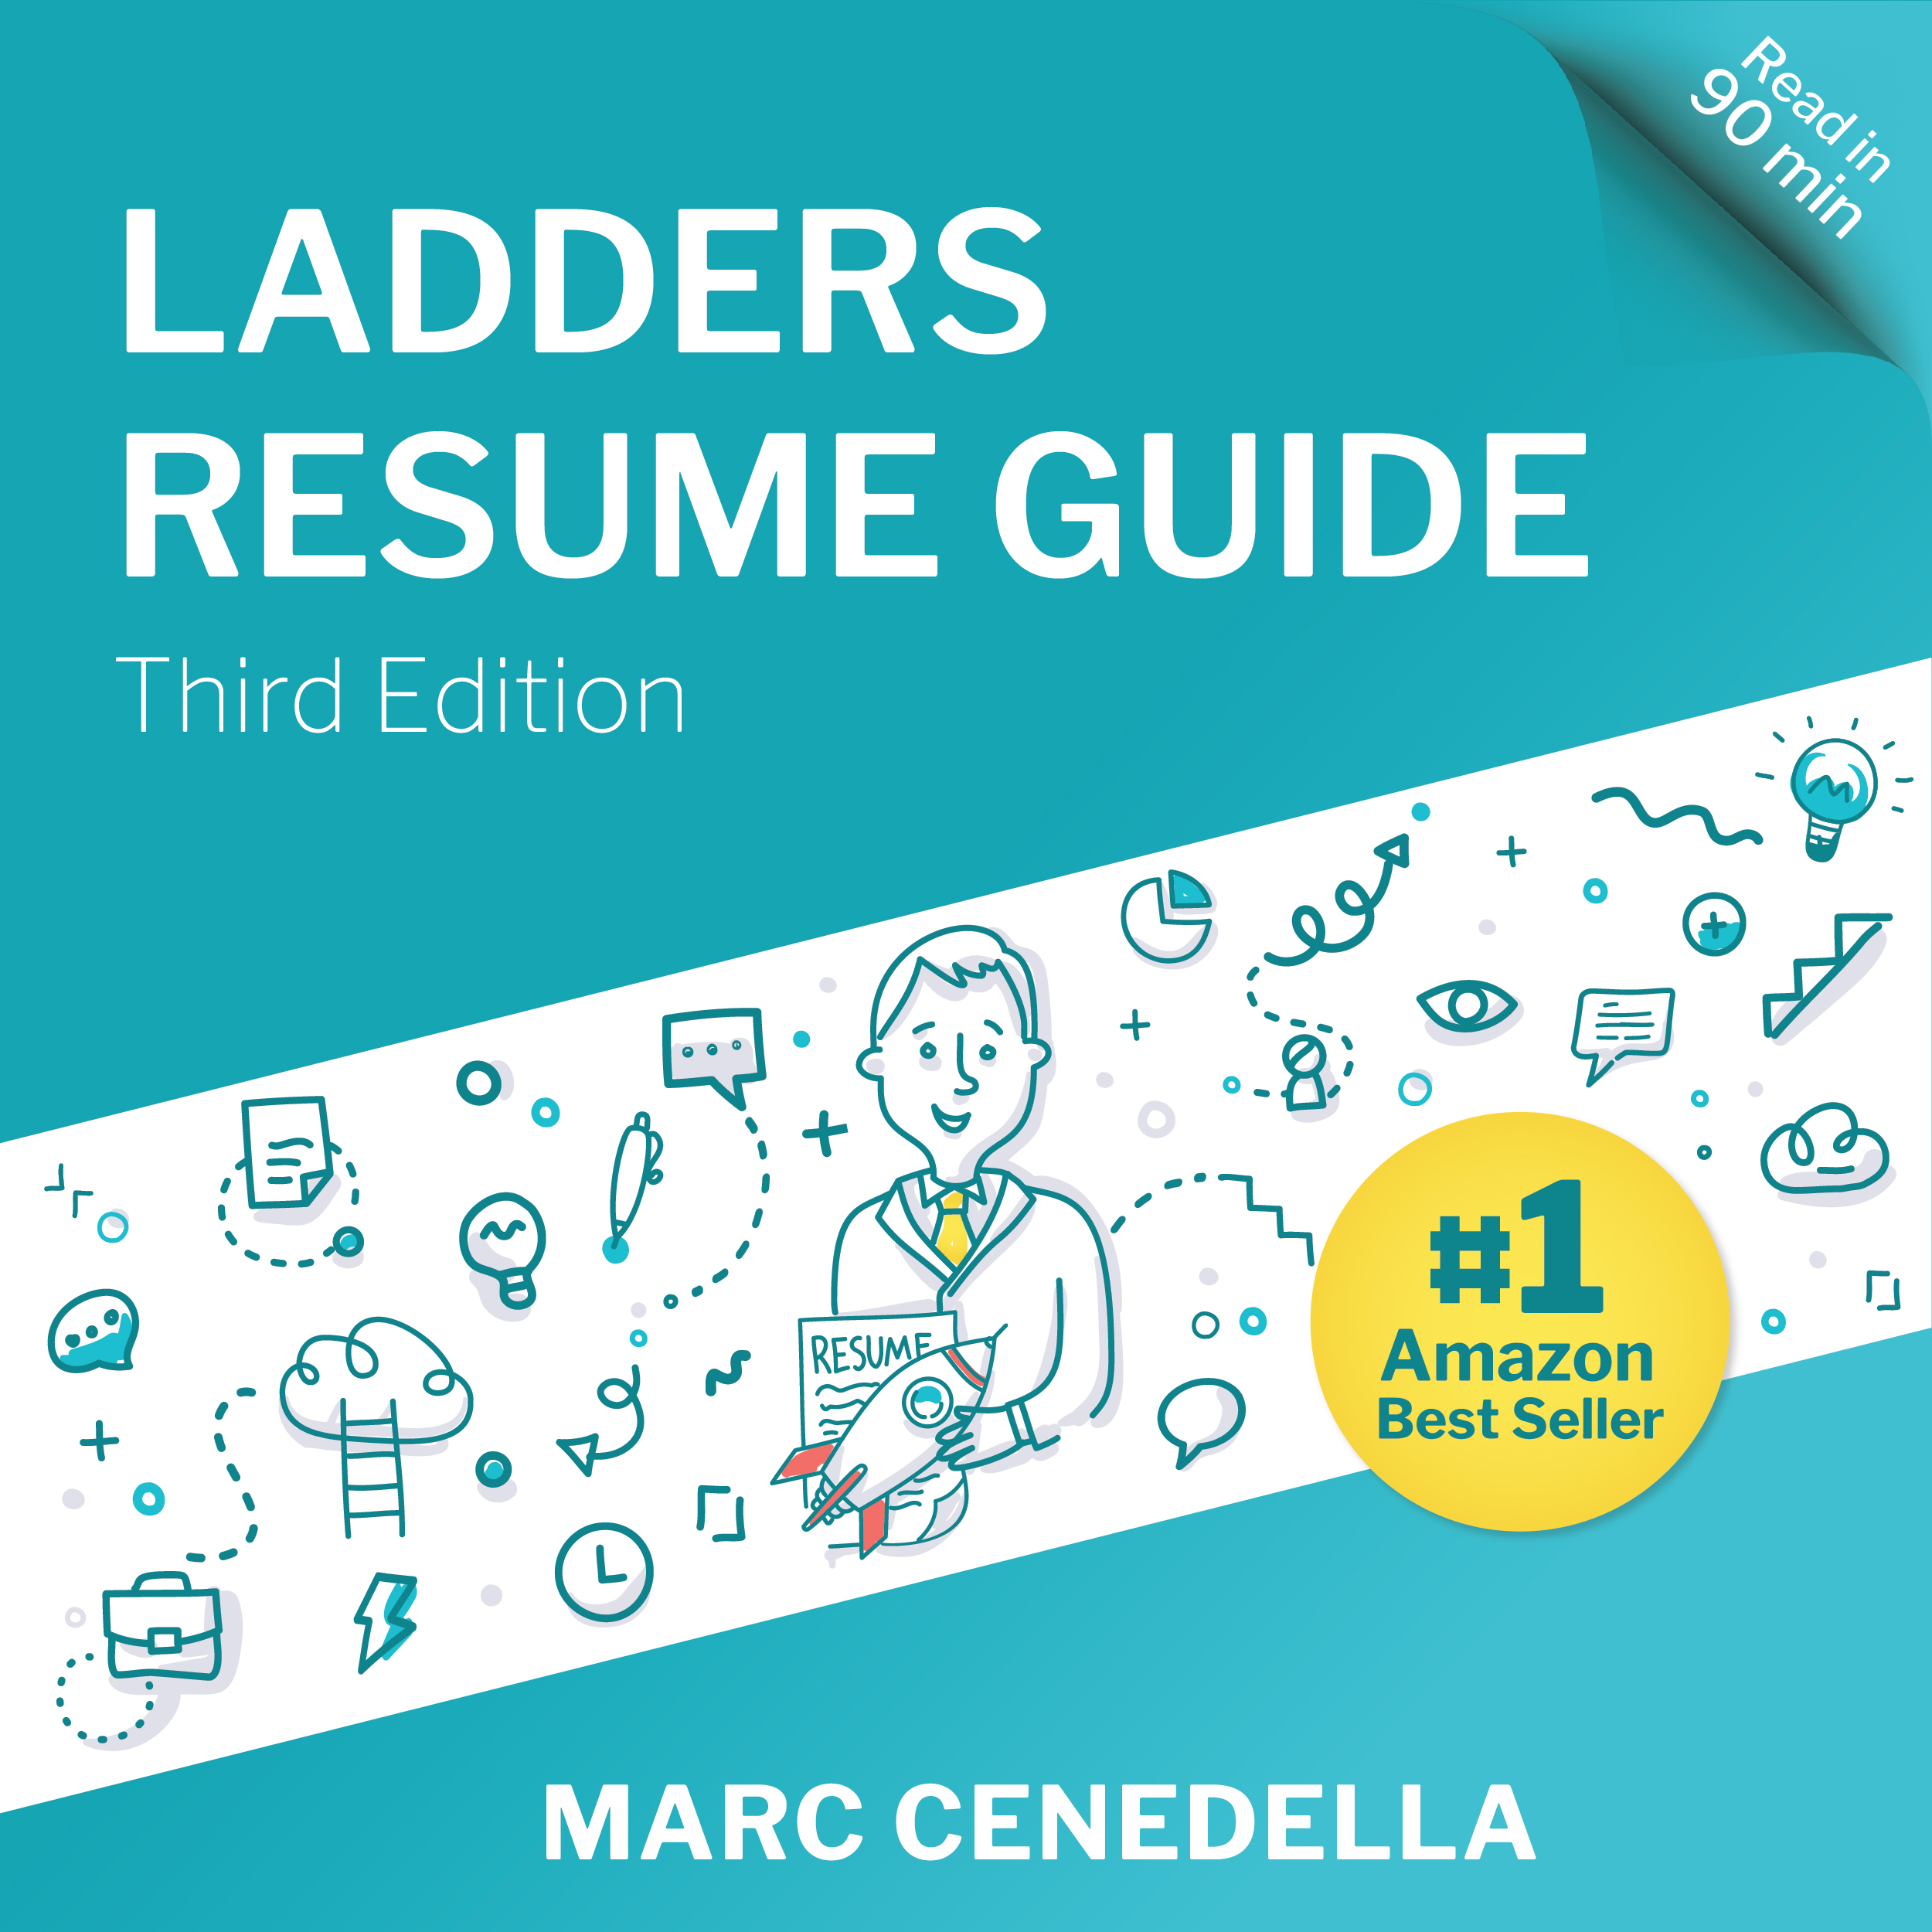 ladders 2020 resume guide  how to make your resume a